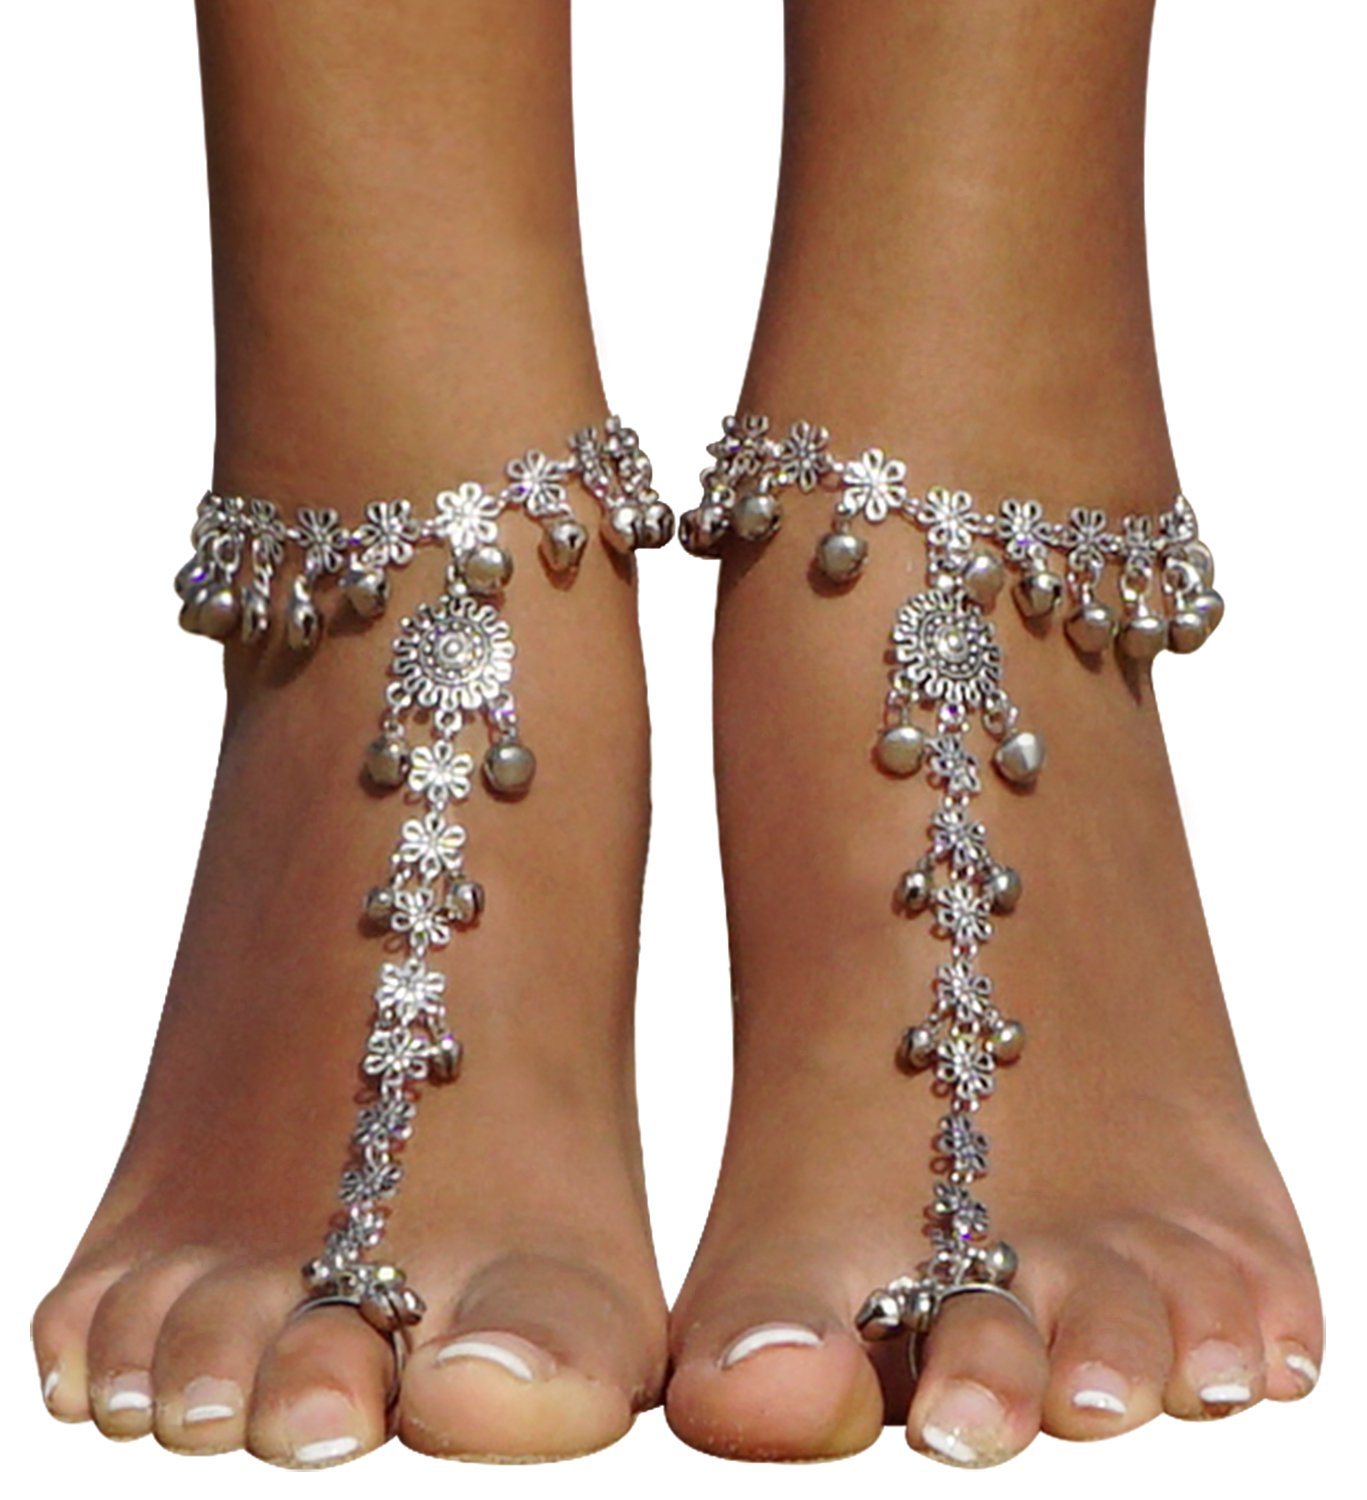 Bellady 2 Piece Vintage Style Small Bell Barefoot Sandals Summer Foot Jewelry Anklet Chain Bracelet, Silver Bell